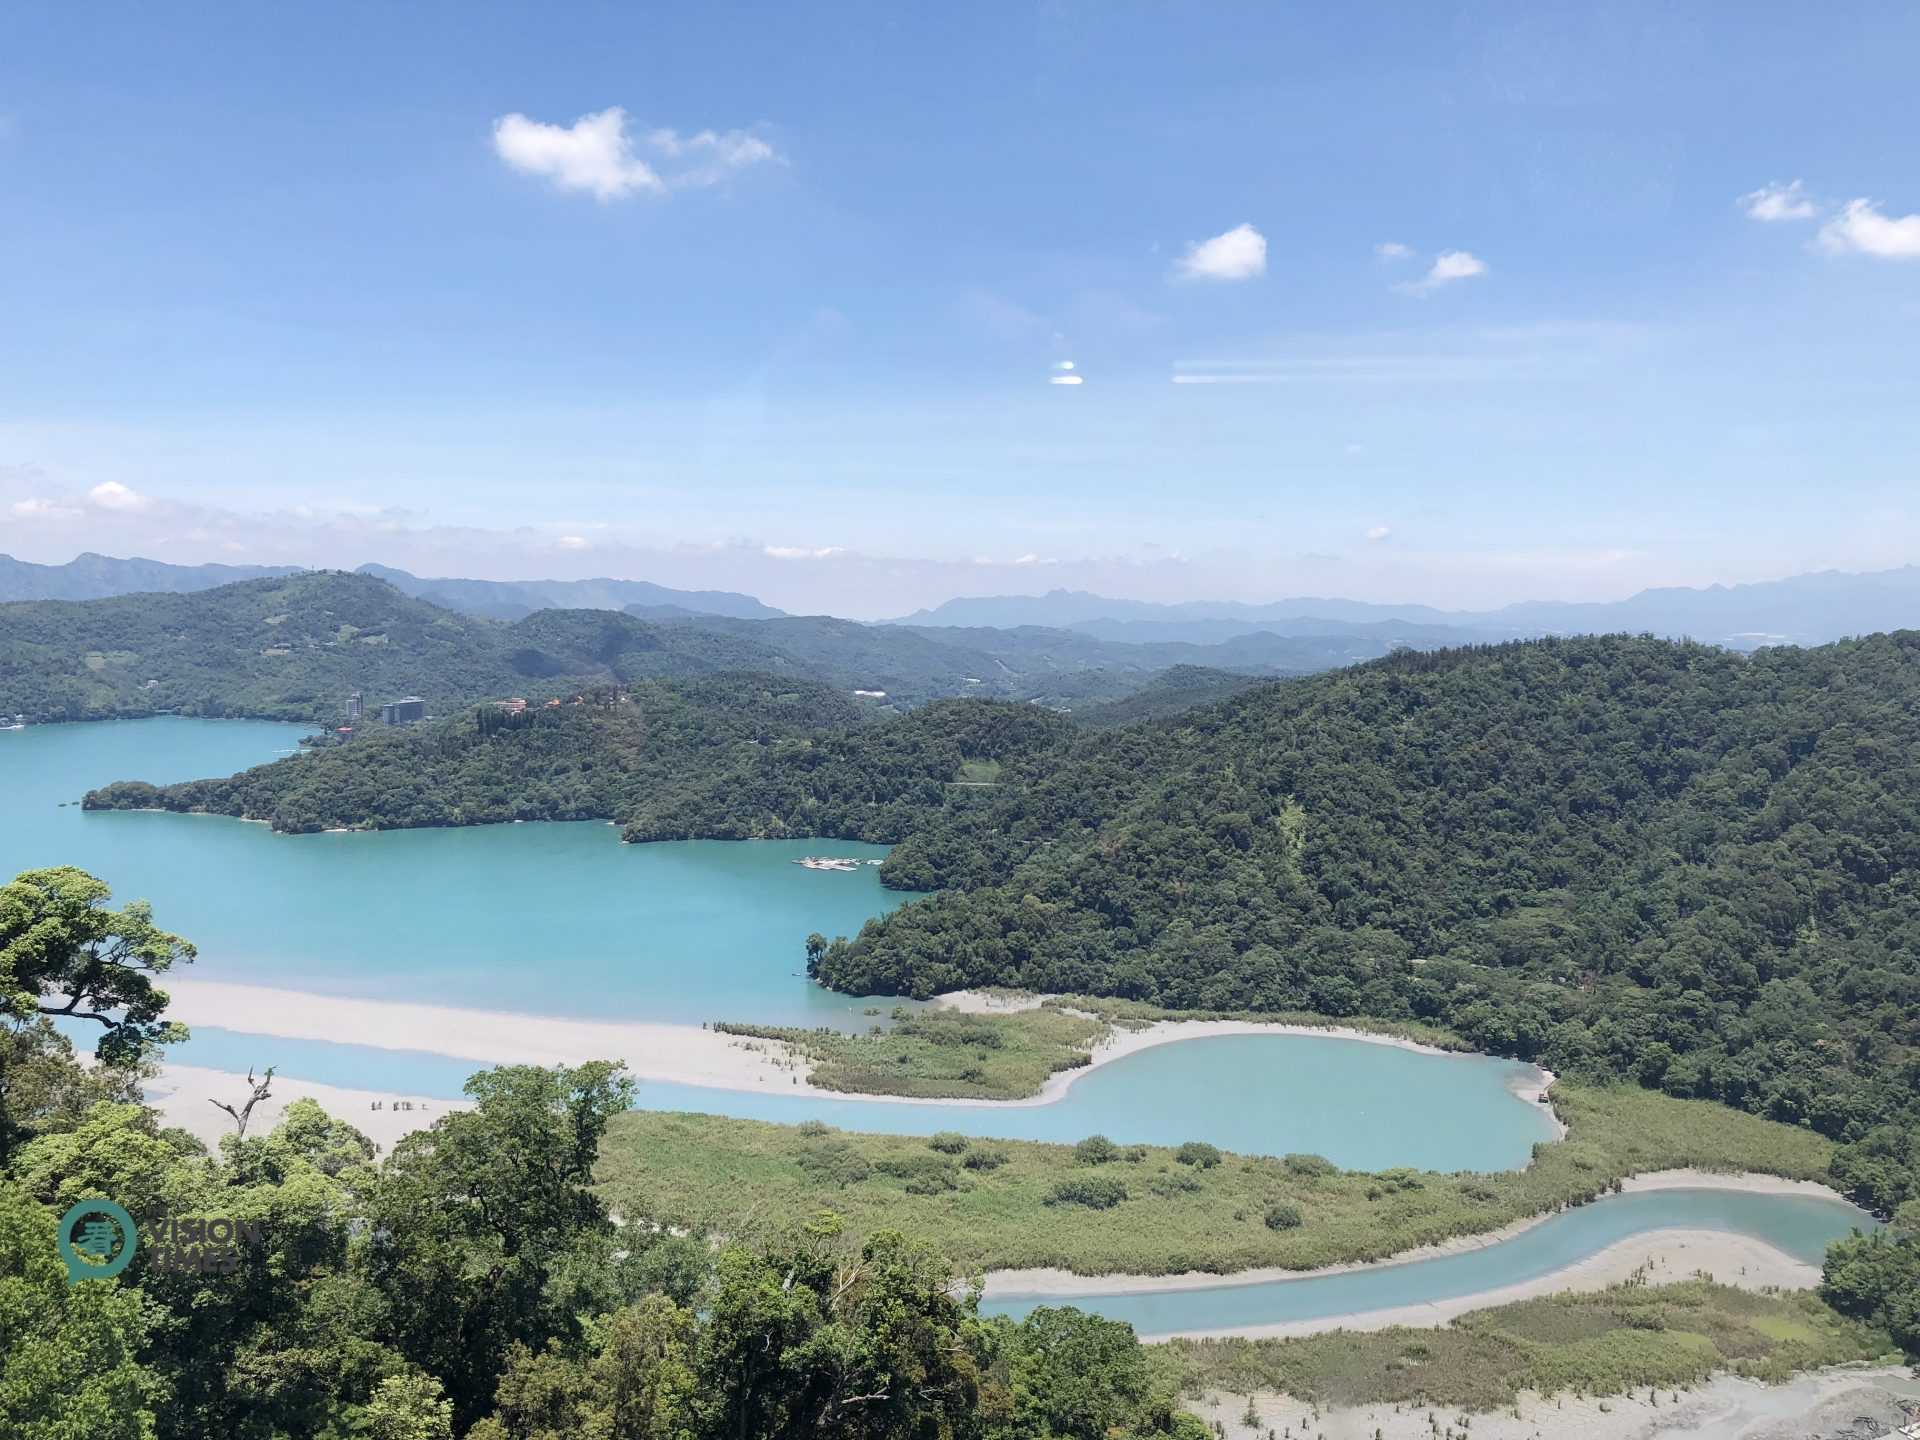 The Sun Moon Lake in central Taiwan. (Image: Billy Shyu / Vision Times)